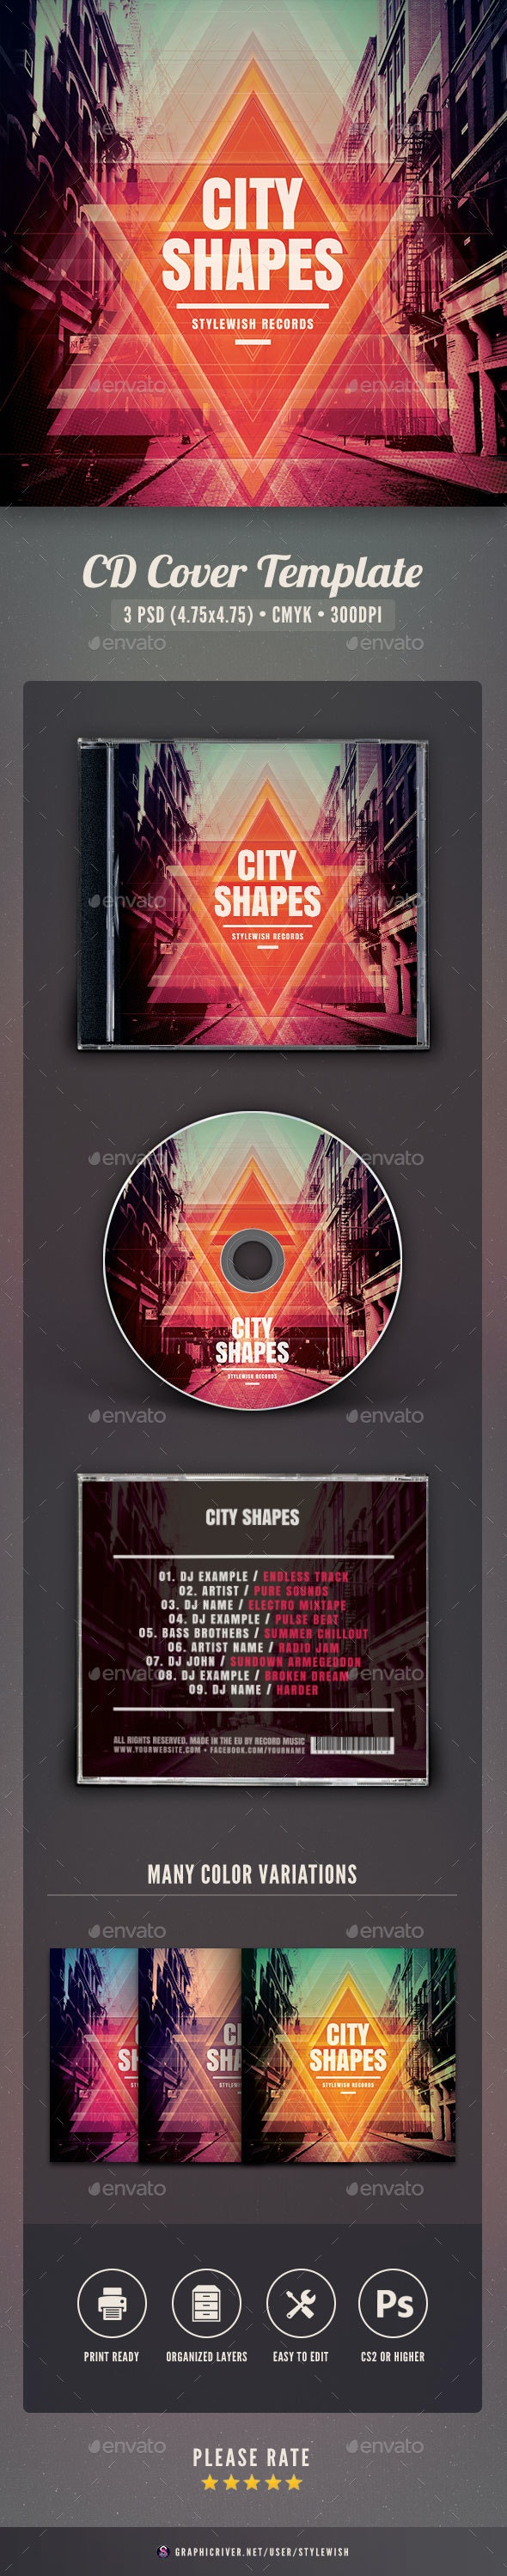 City Shapes CD Cover Artwork - CD & DVD Artwork Print Templates